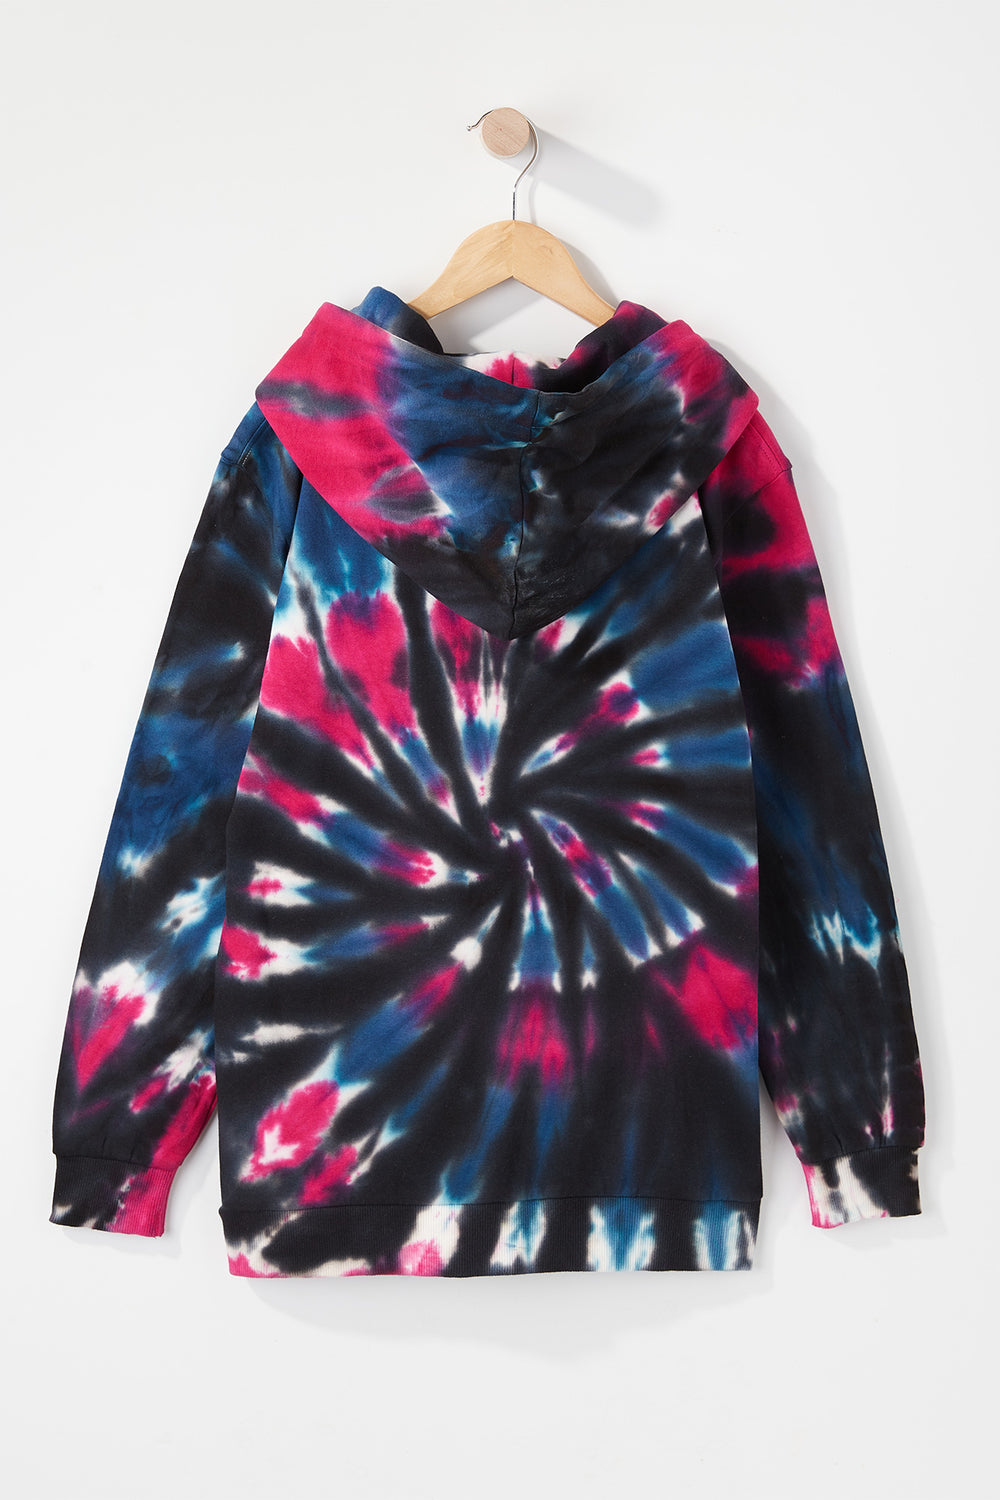 Young & Reckless Boys Tie-Dye Pullover Hoodie Black